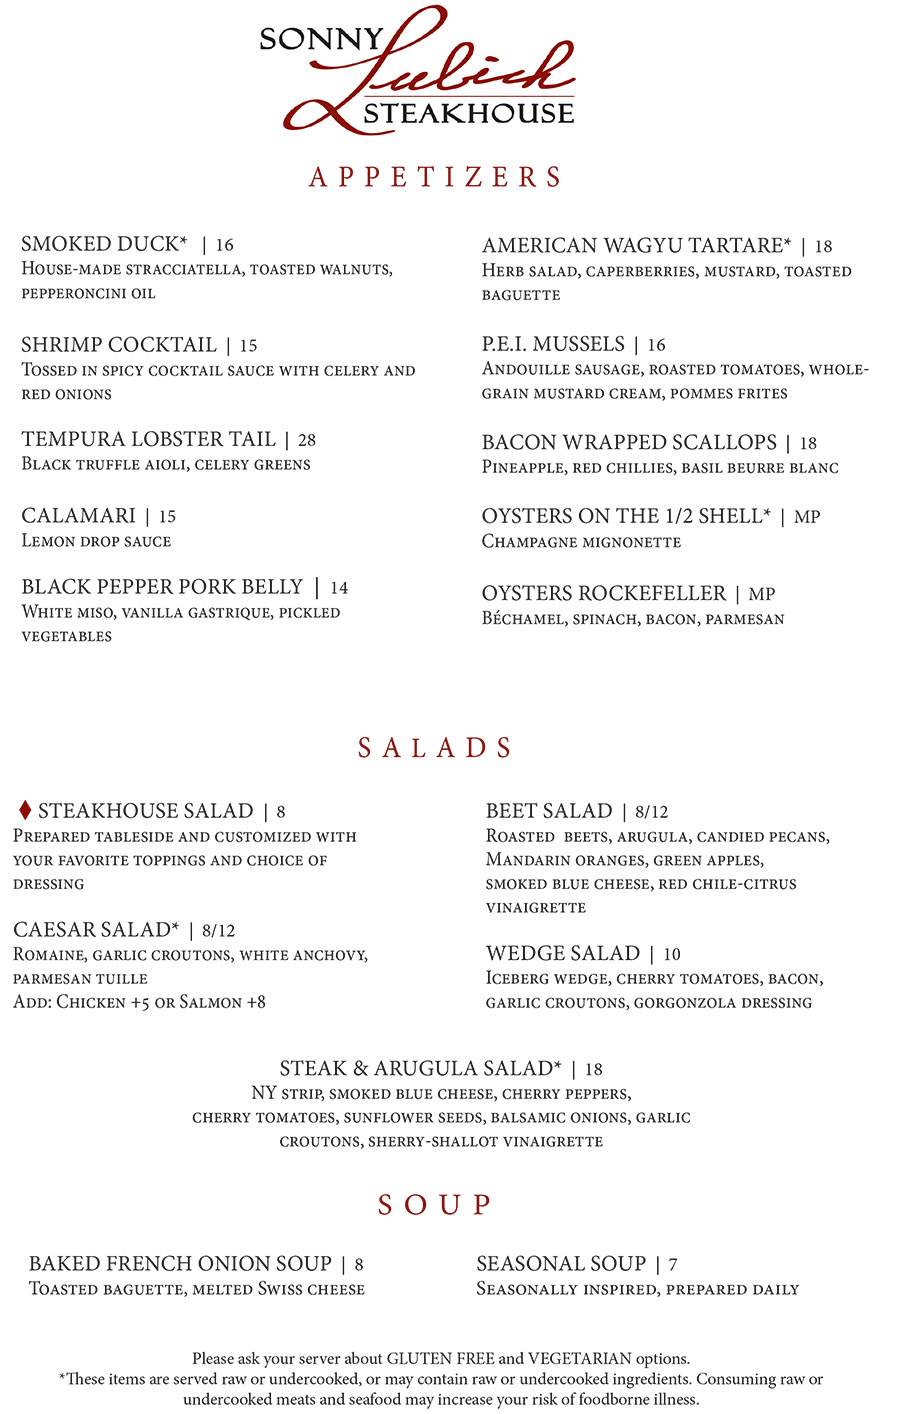 Appetizers, Salads and Soups - Sonny Lubick Steakhouse Dinner Menu